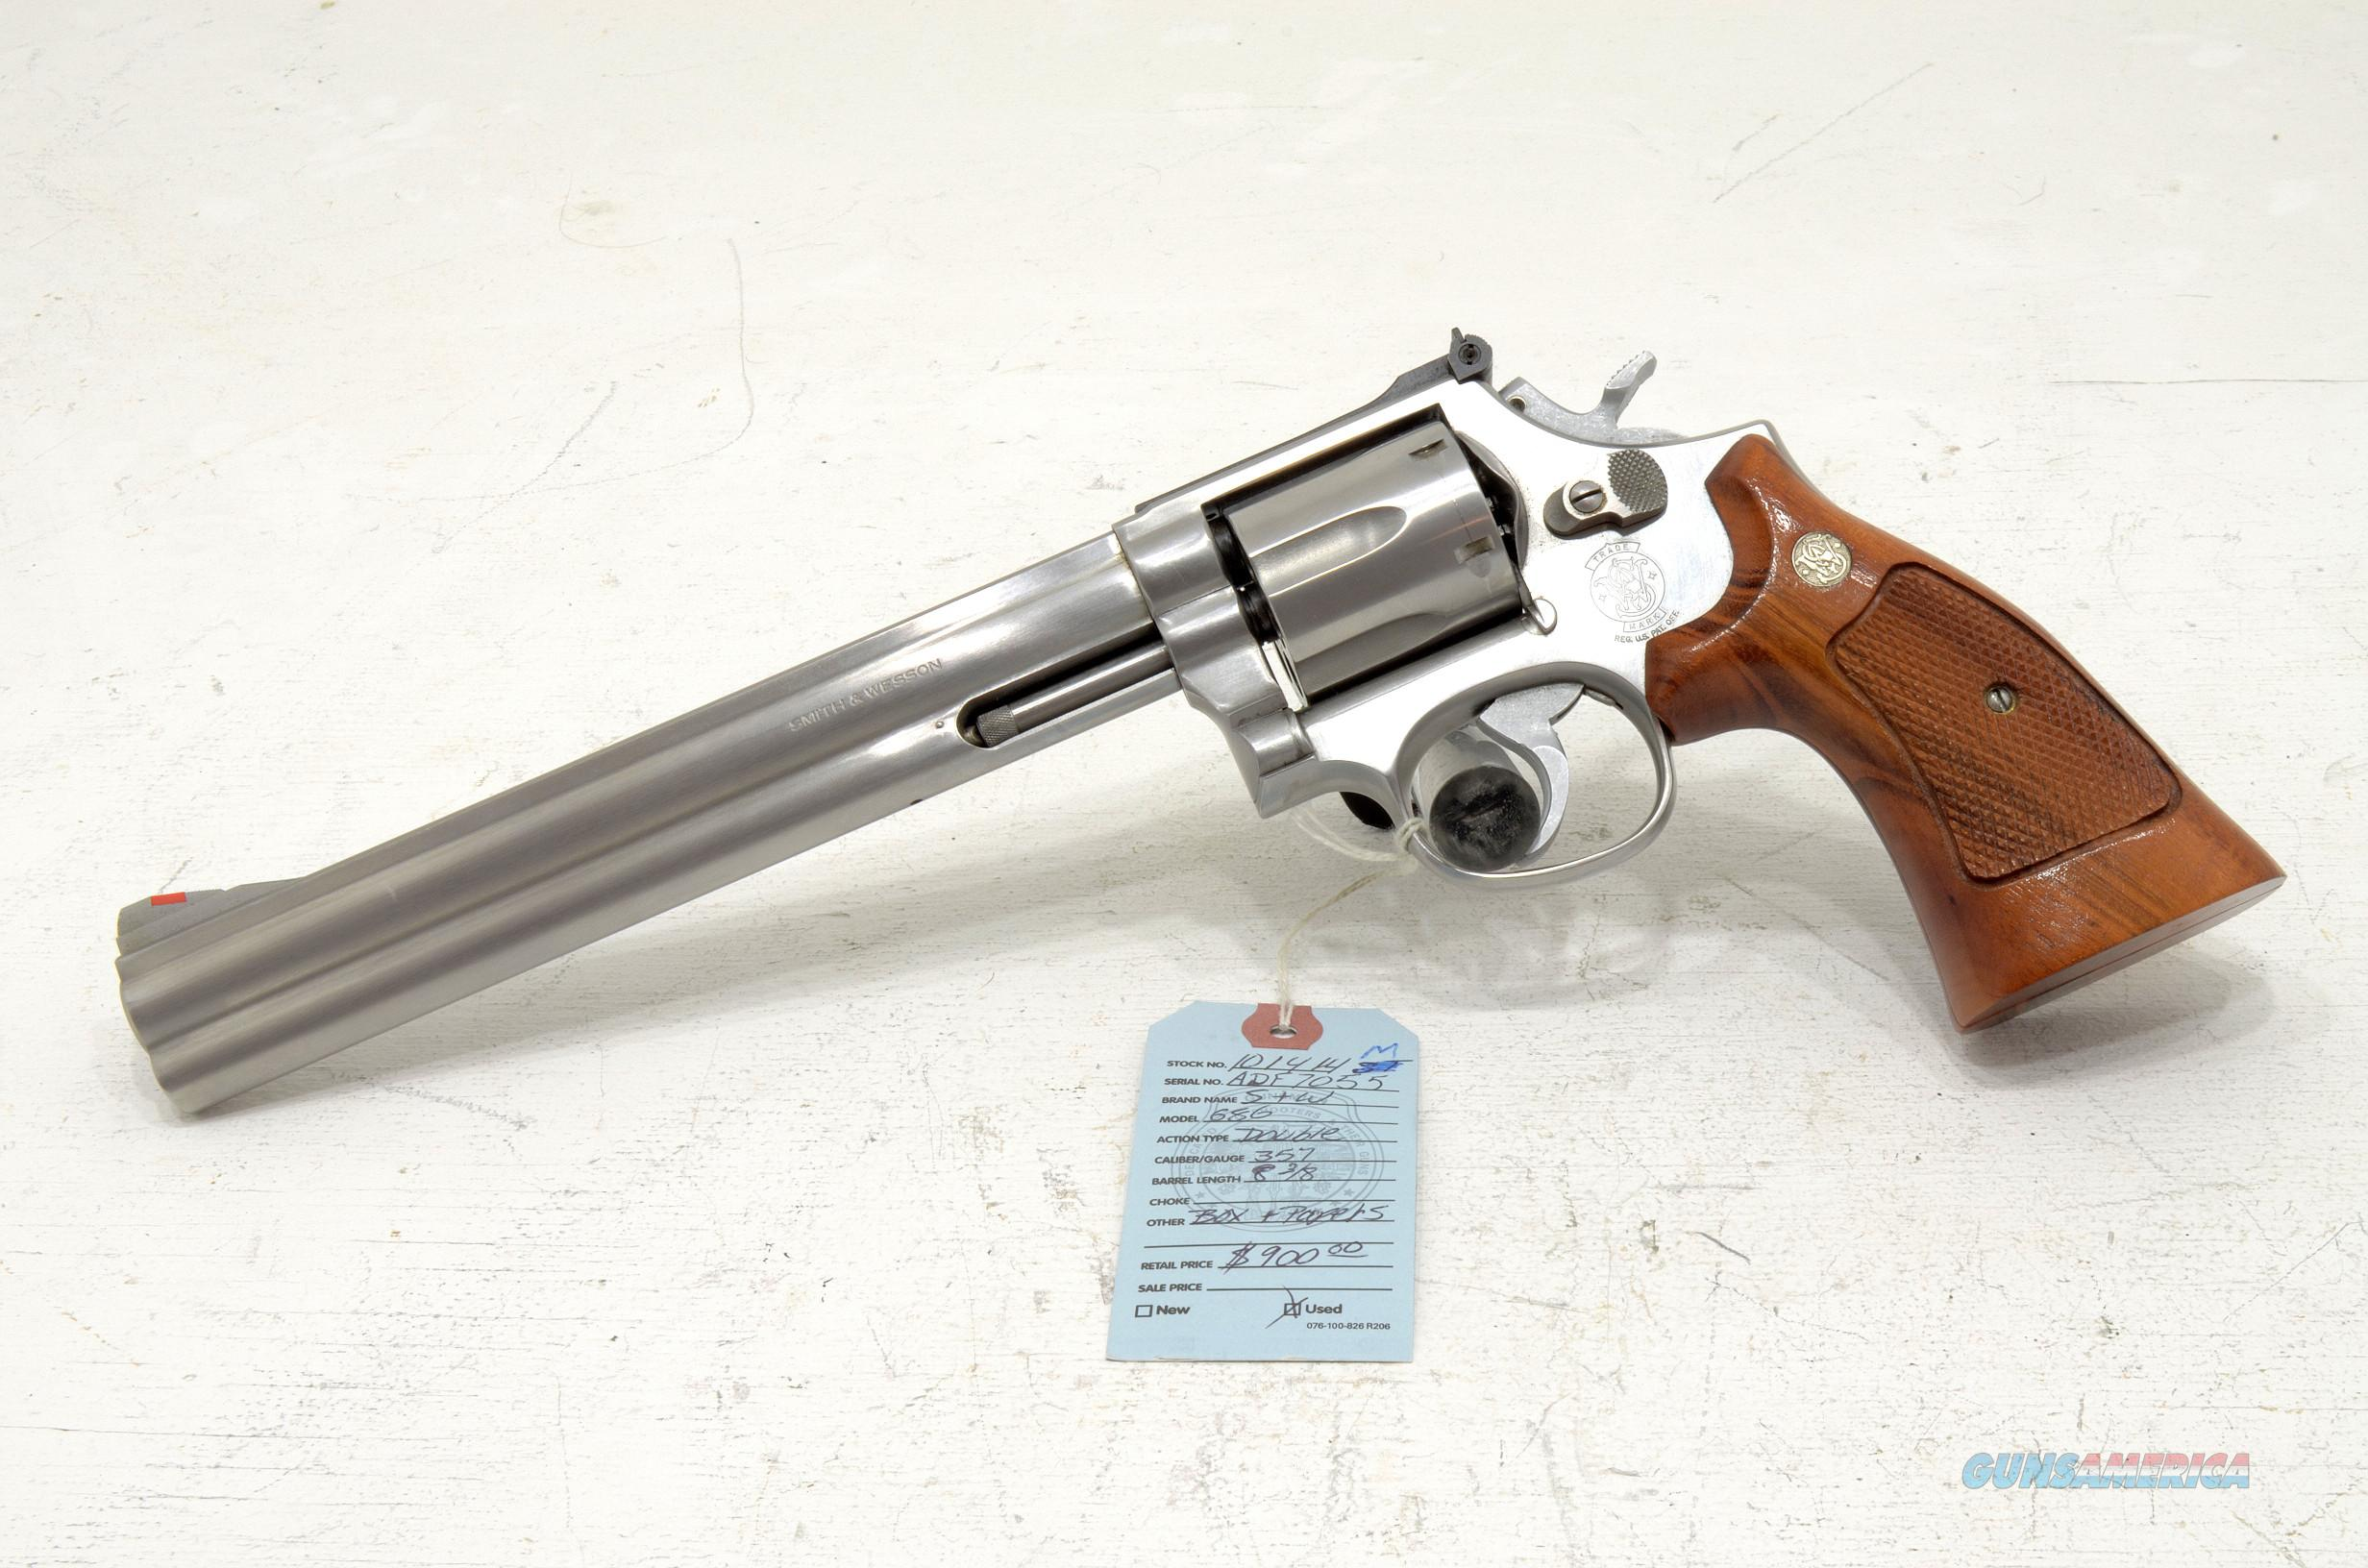 SMITH & WESSON 686 .357 mag  Guns > Pistols > Smith & Wesson Revolvers > Full Frame Revolver